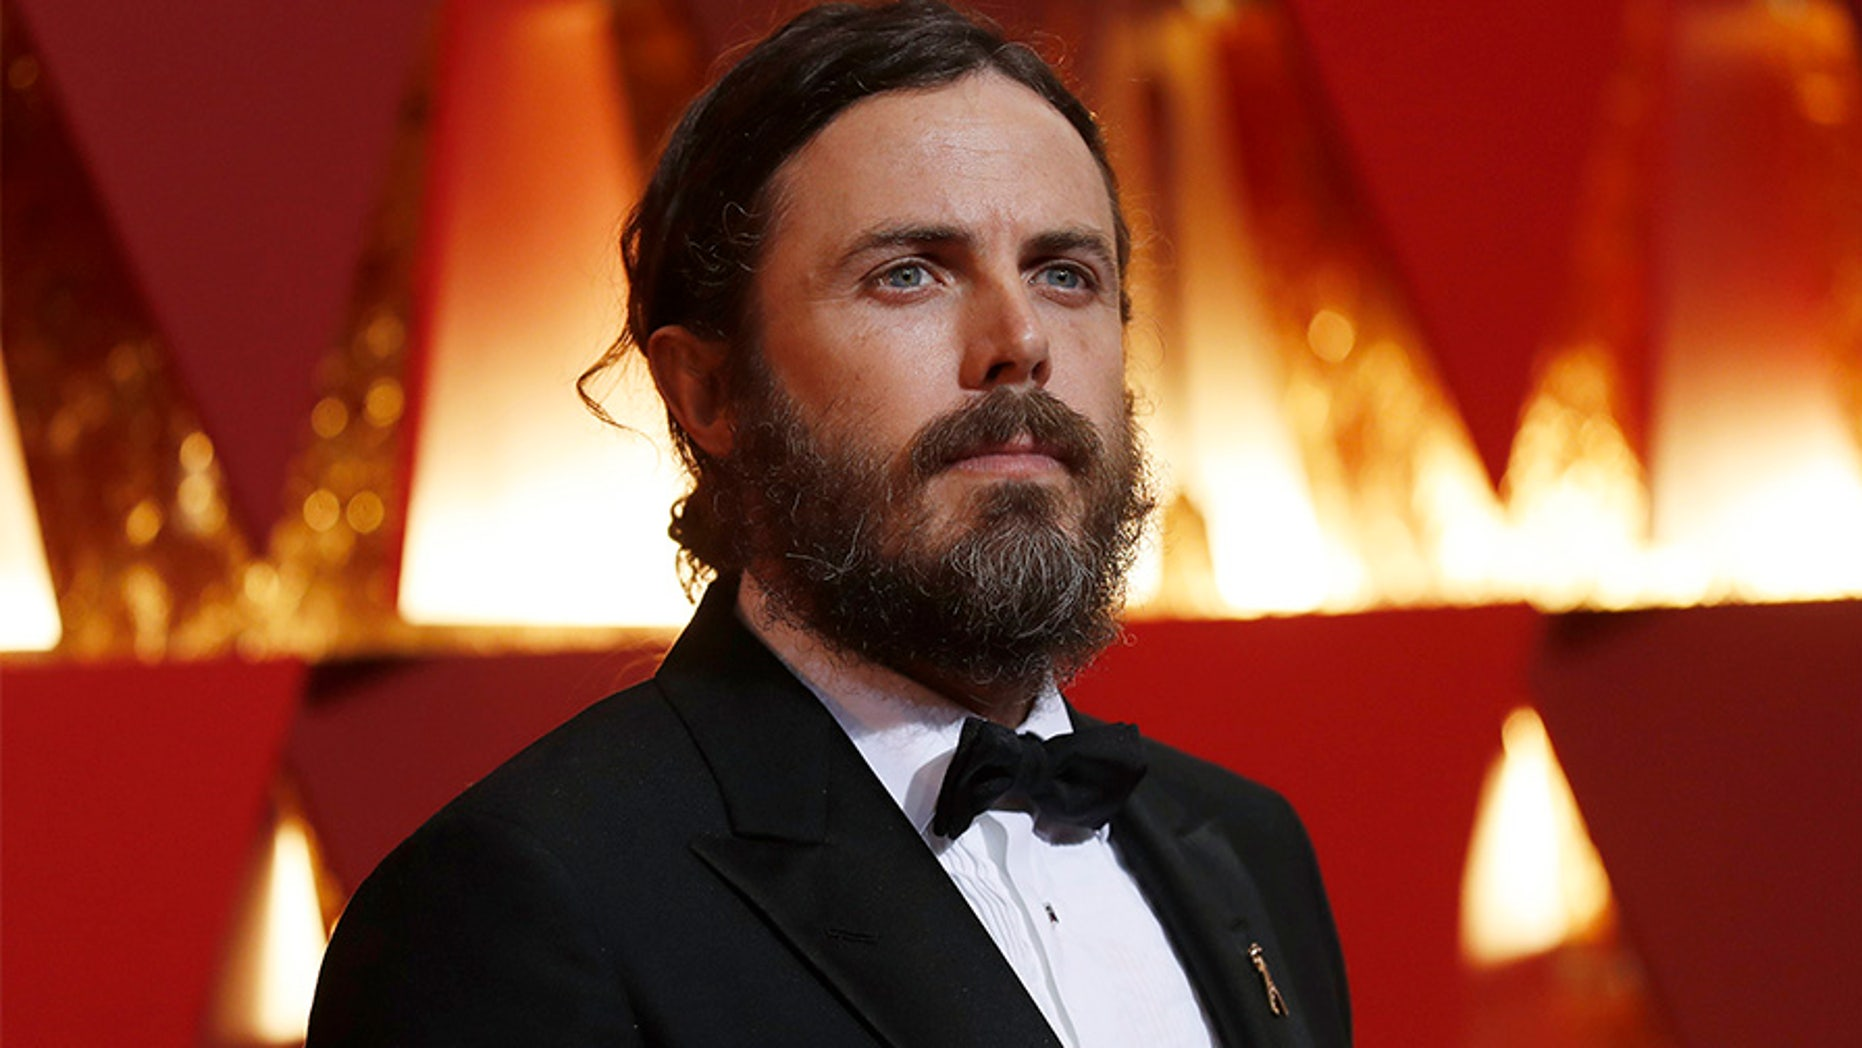 """Casey Affleck was accused of sexual harassment by two female crewmembers on the set of """"I'm Still Here."""" The cases were settled out of court and dismissed."""